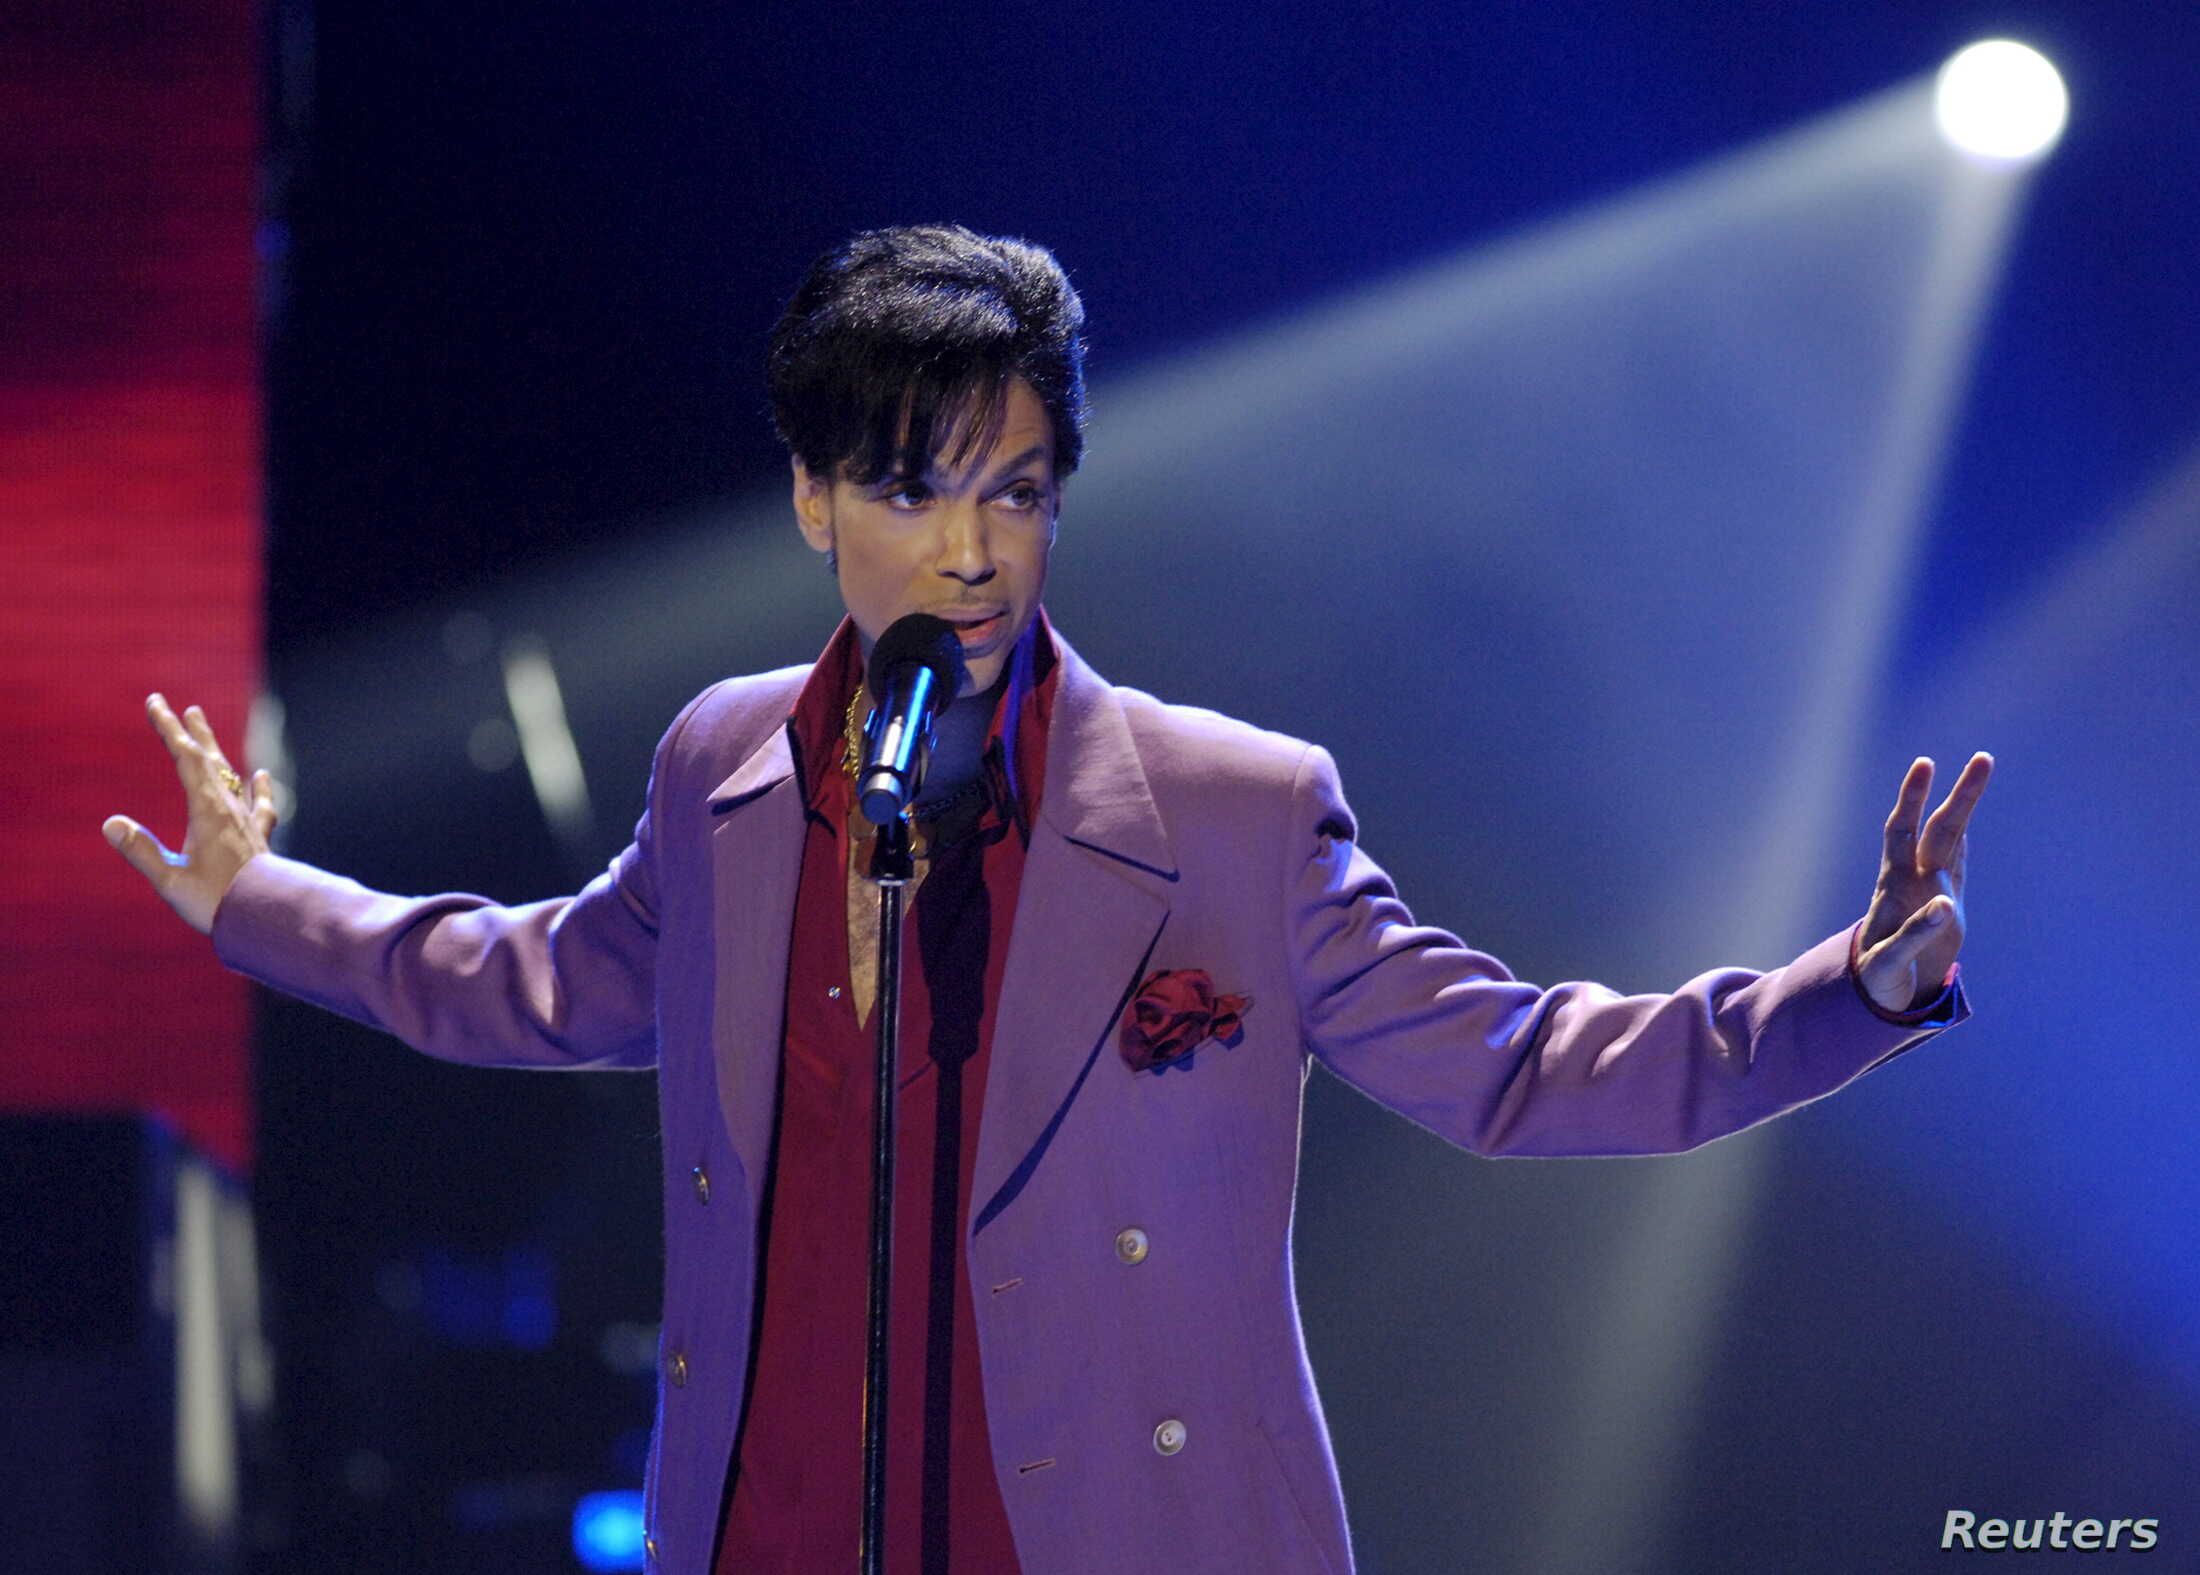 Judge Blocks Sound Engineer's Release of Prince Music | Voice of